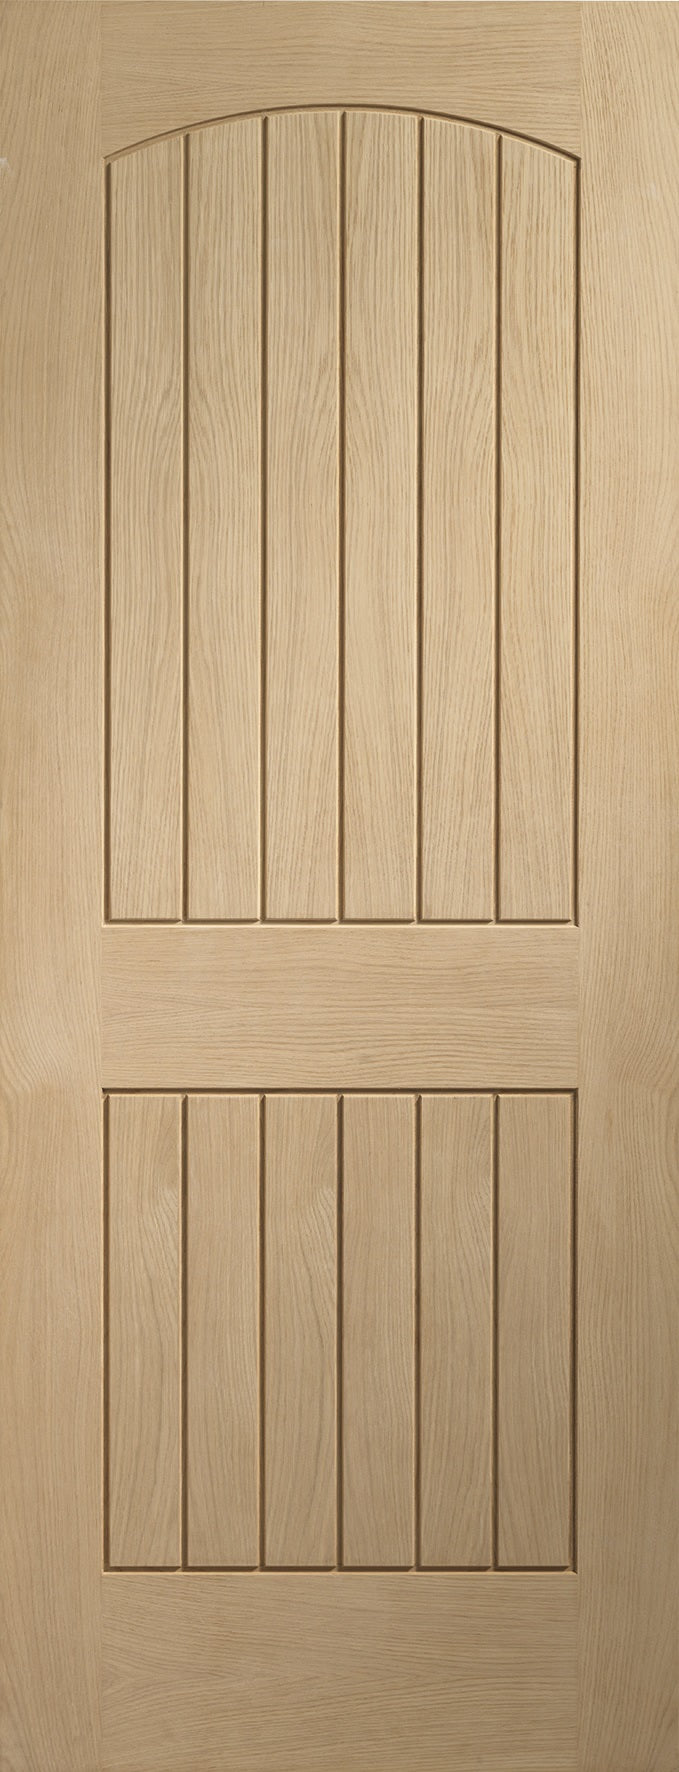 Sussex oak fire door